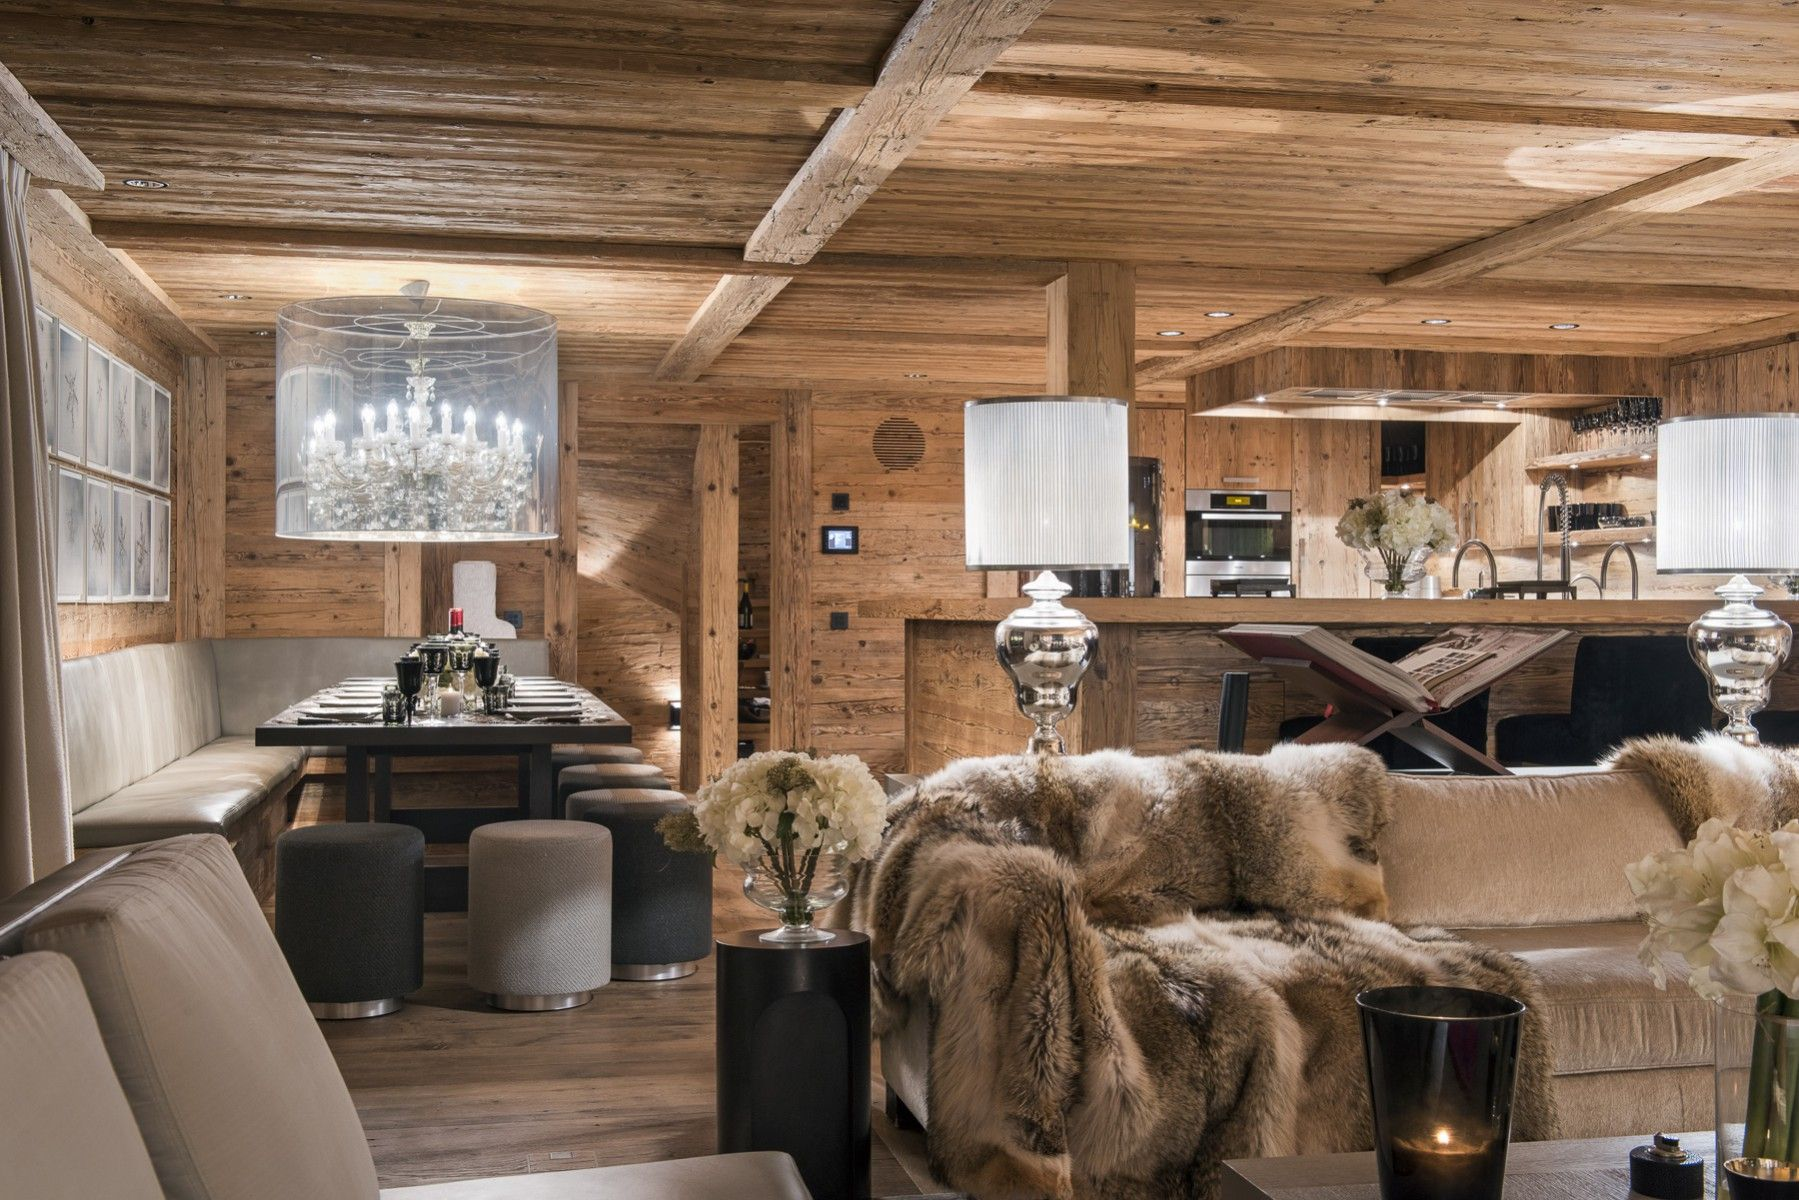 Amala Top Luxus Chalet in Gstaad Rustic house, Chalet